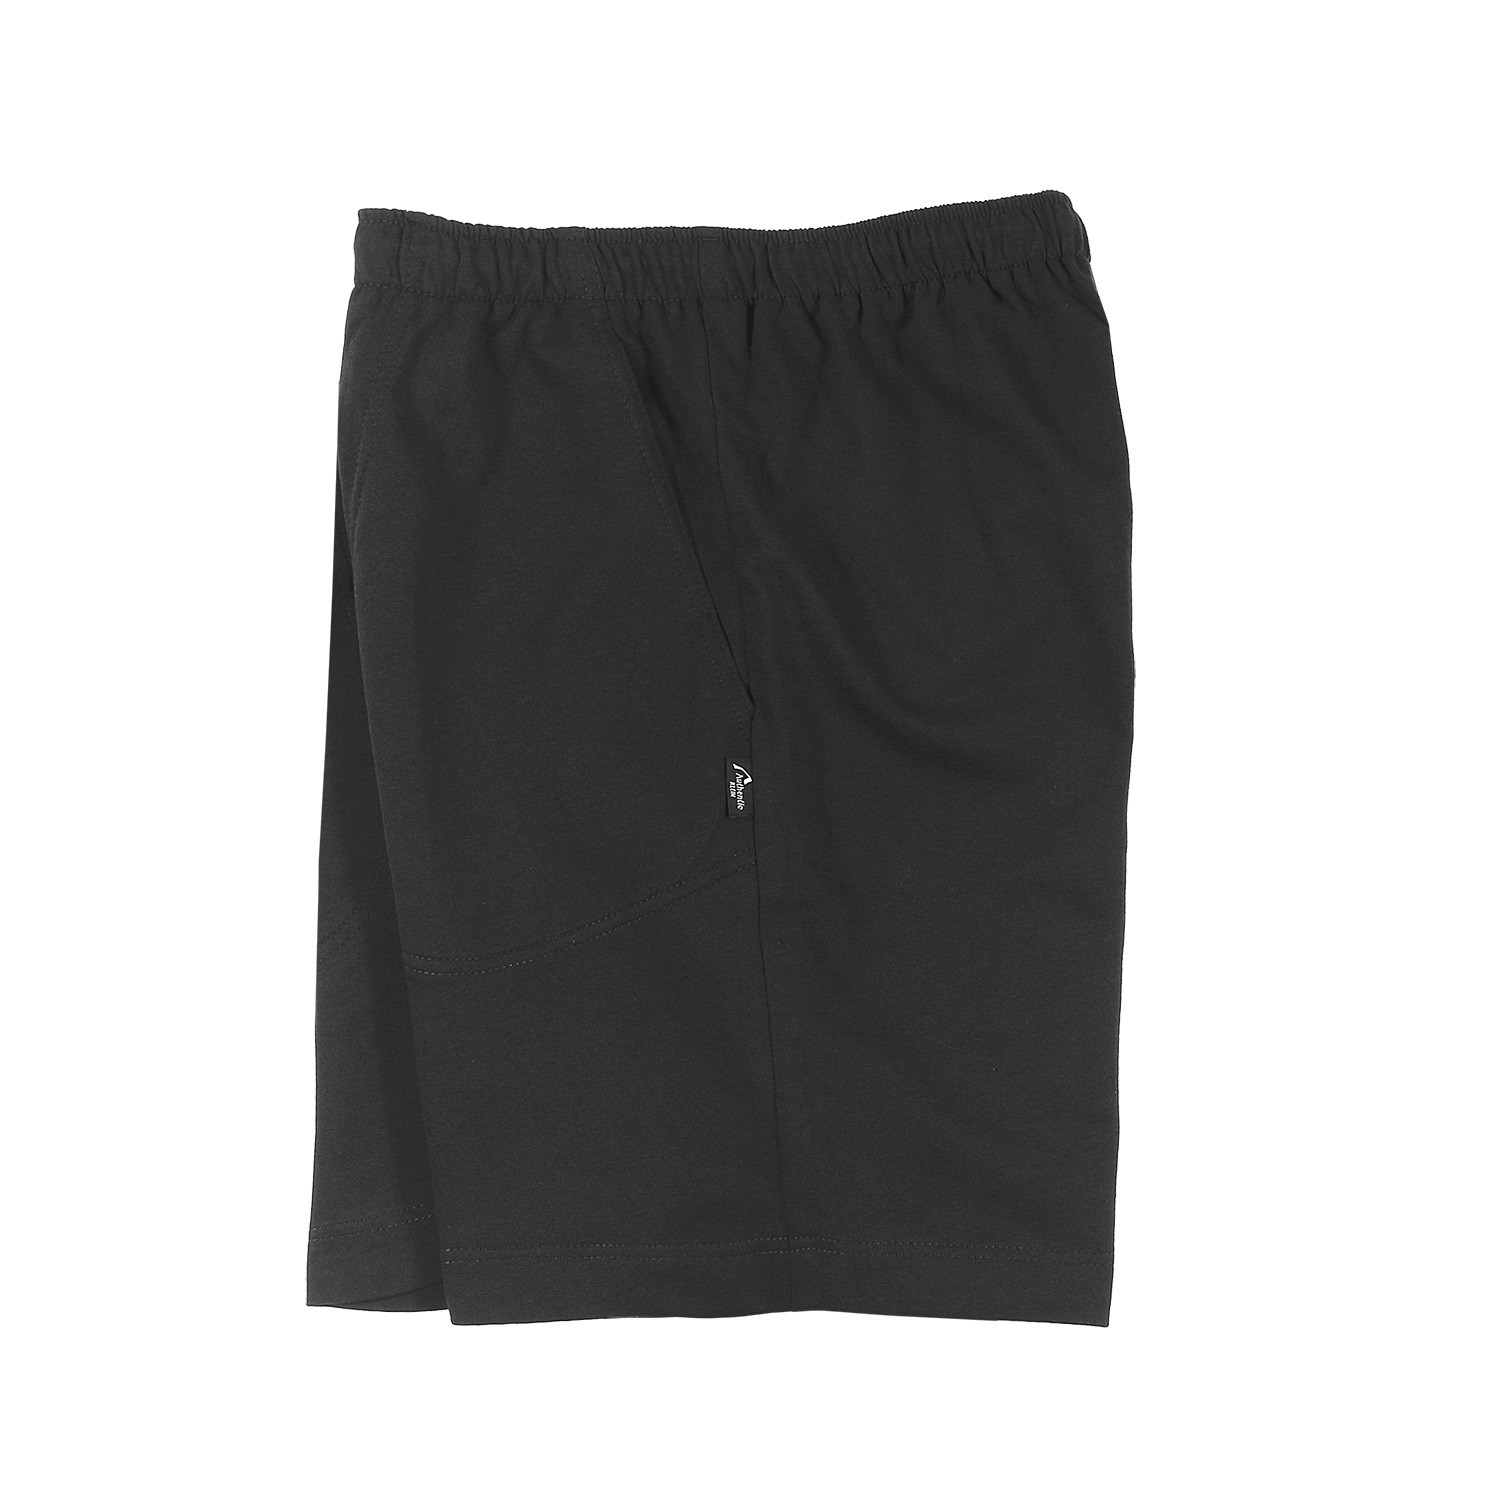 Detail Image to Sports and leisure bermuda in black, plus sizes by AUTHENTIC KLEIN